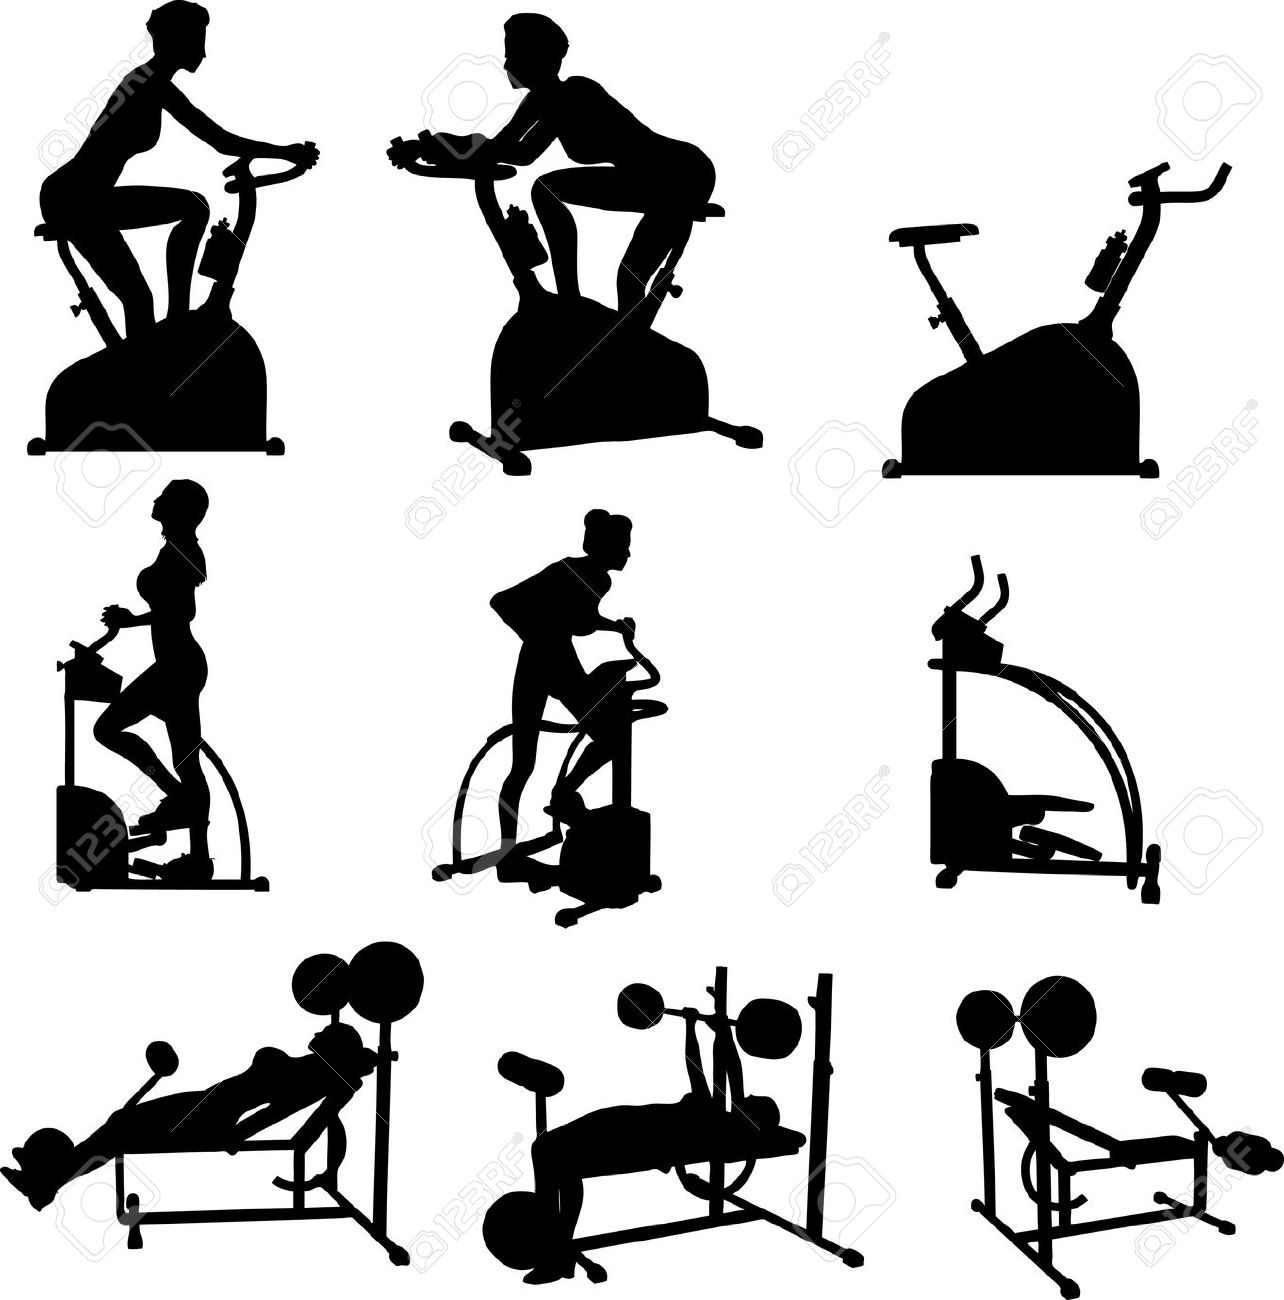 Female Excercise Silhouettes Gym Exercise Fitness